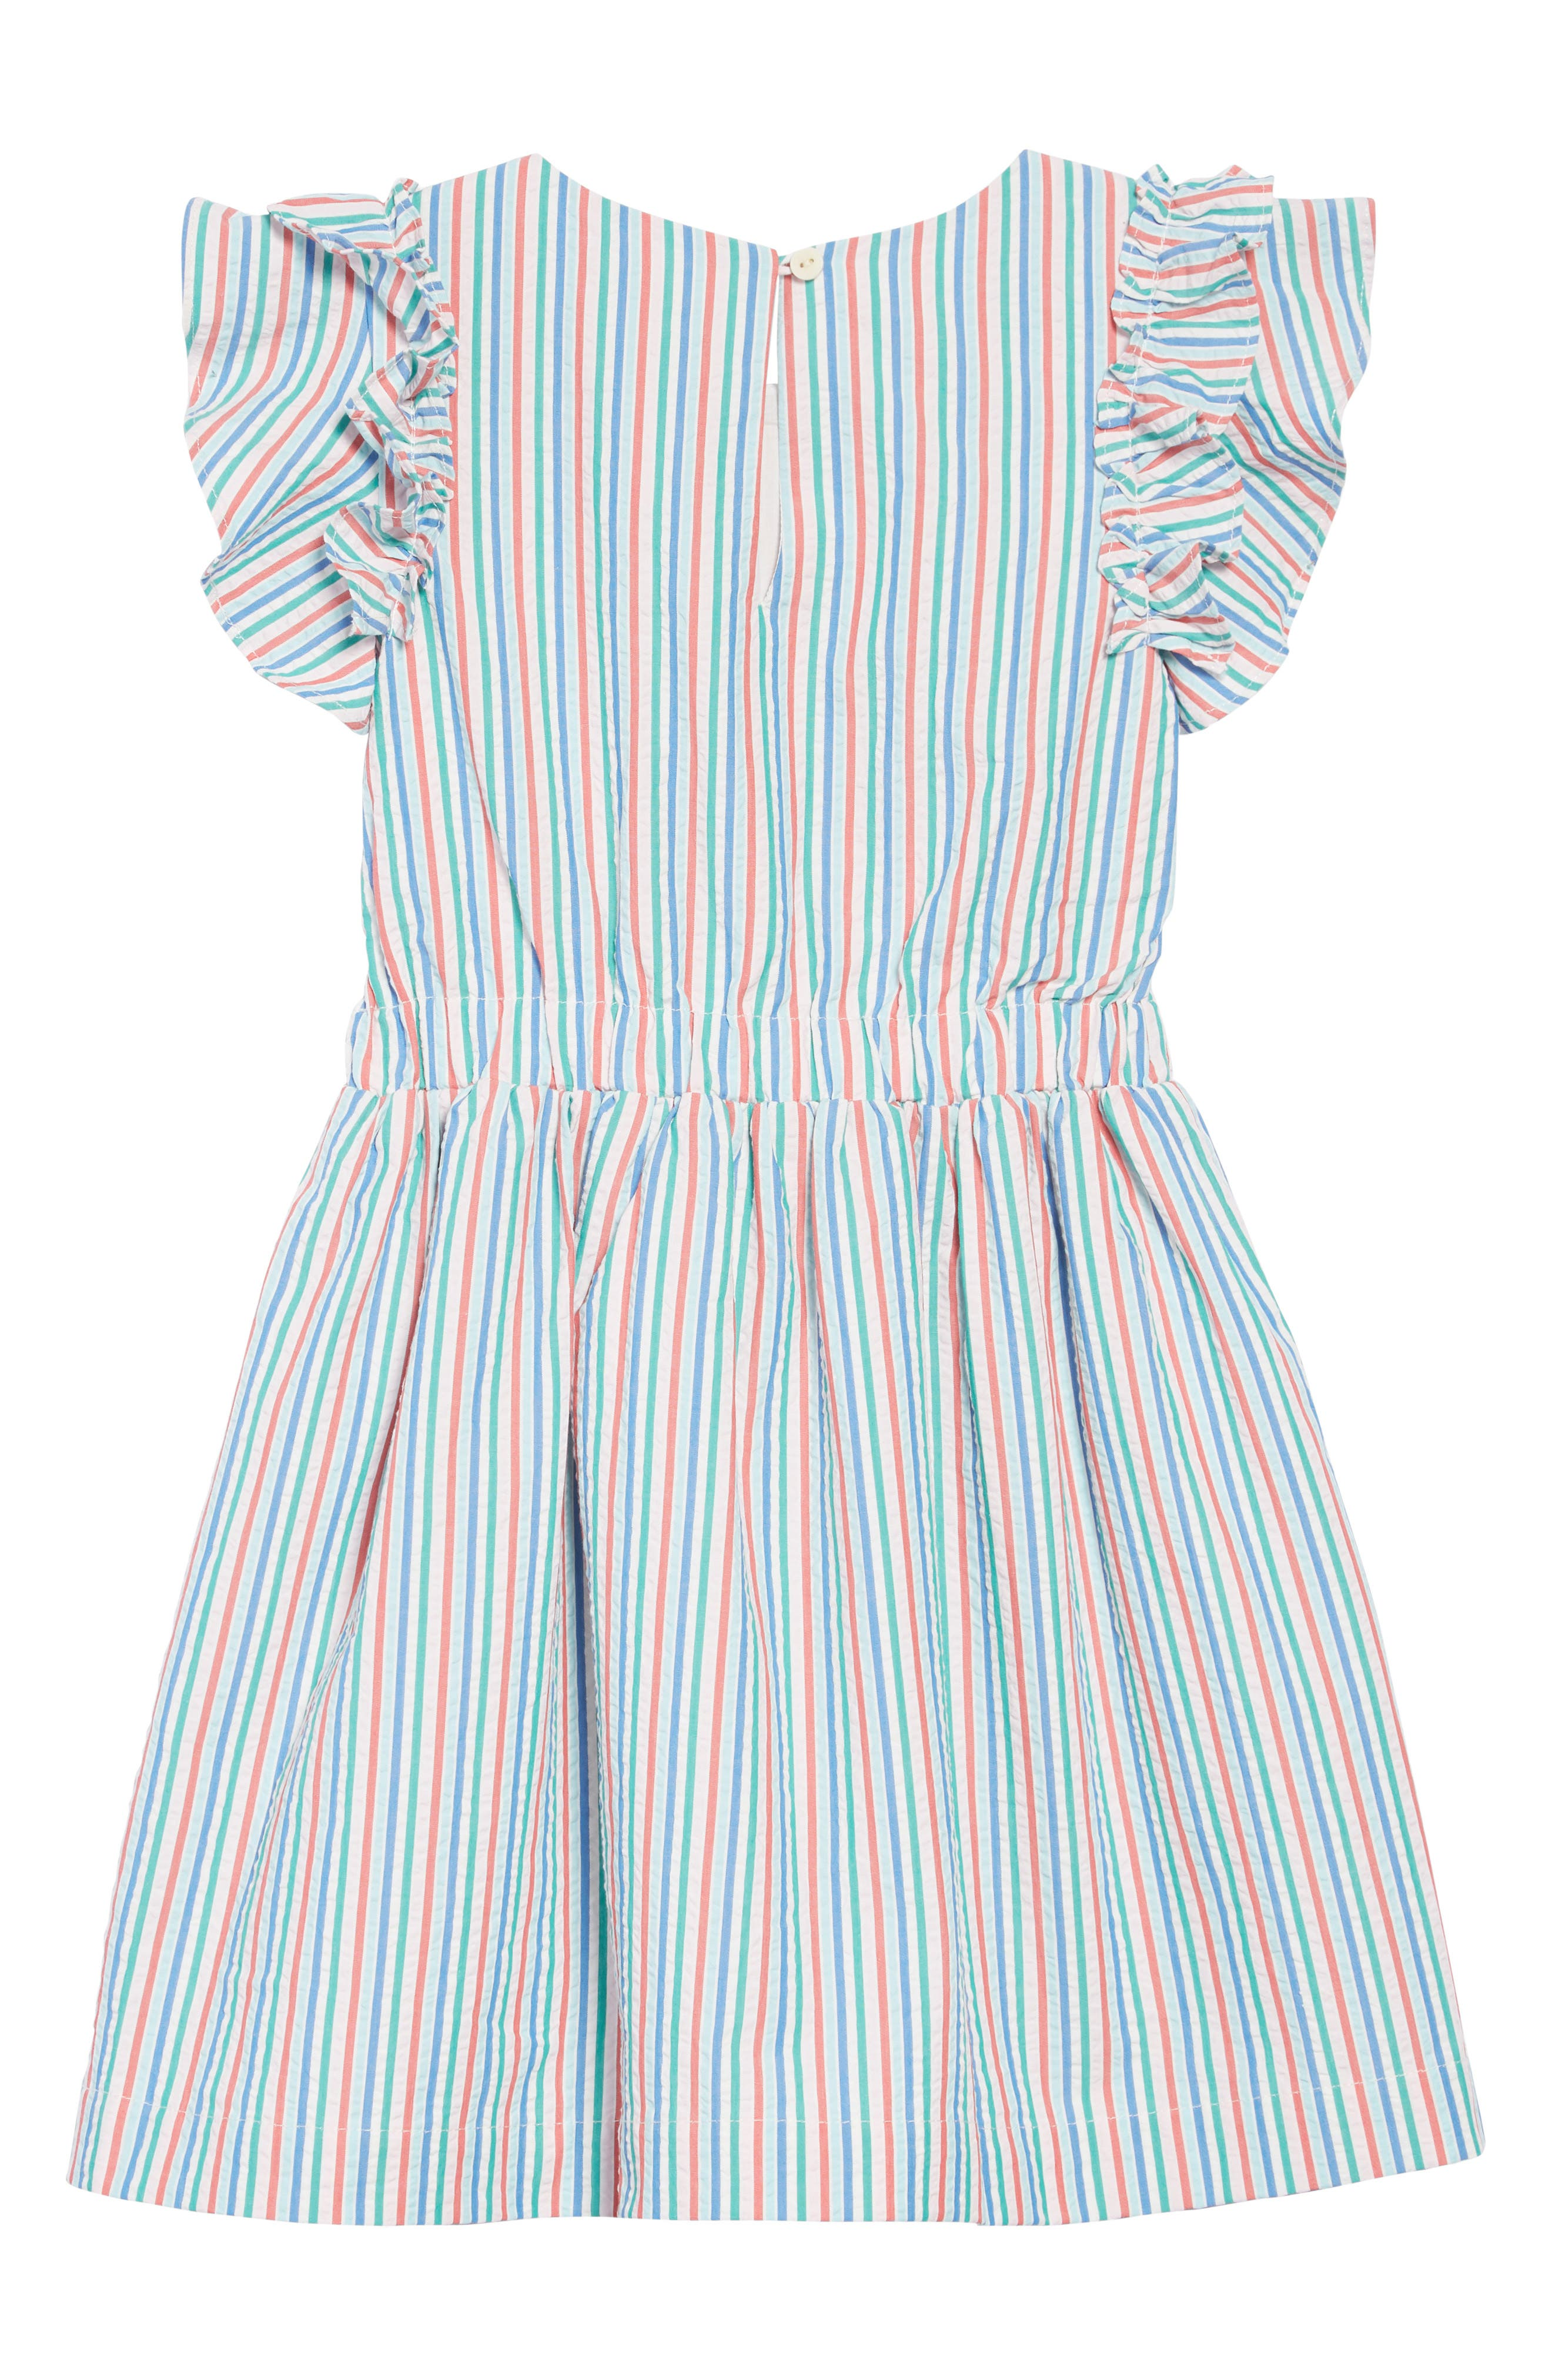 CREWCUTS BY J.CREW, Kate Ruffle Seersucker Dress, Alternate thumbnail 2, color, IVORY BLUE MULTI